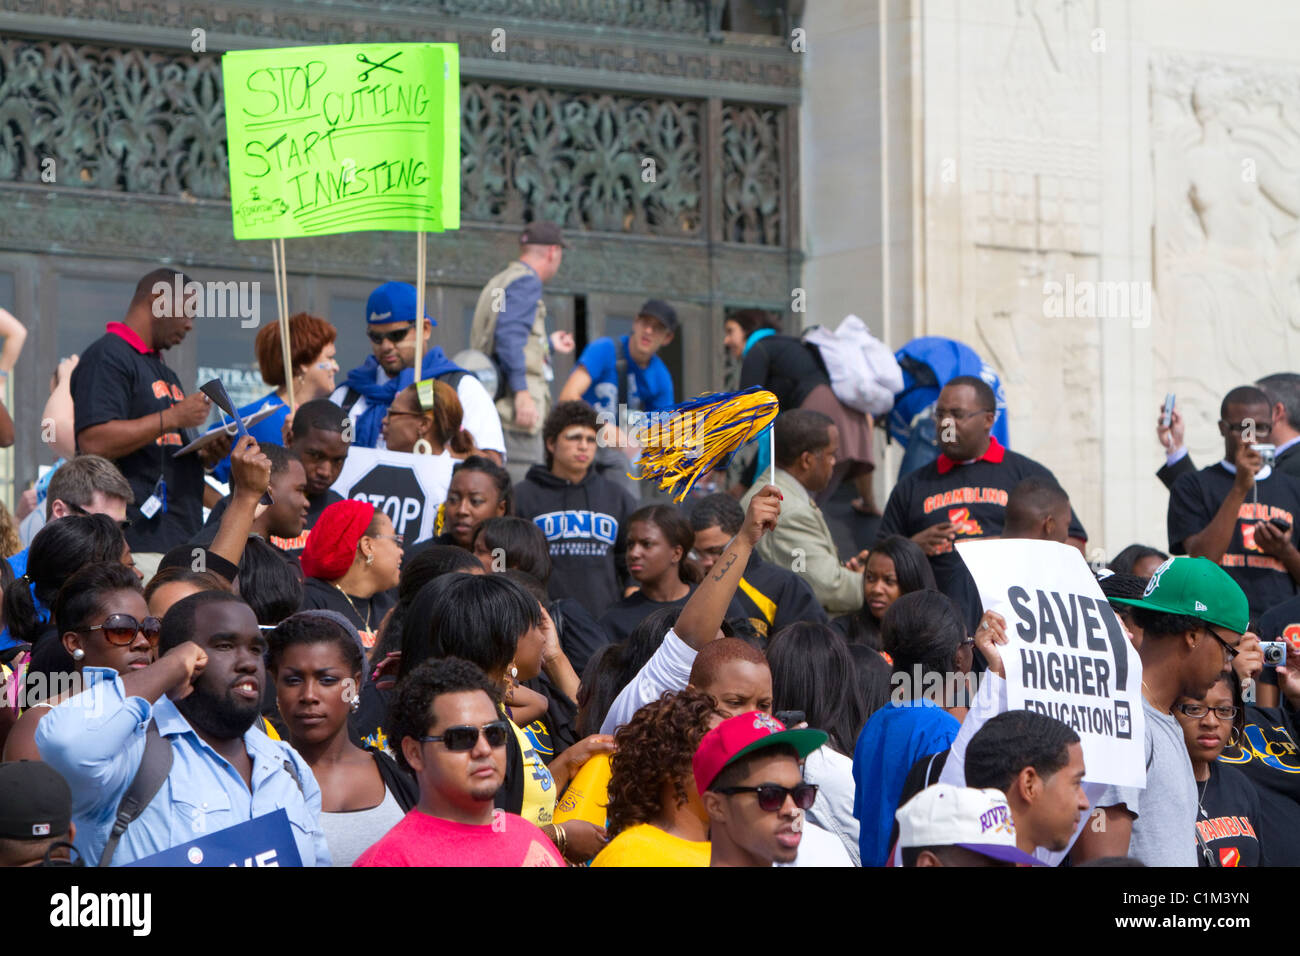 Demonstrators protest educational funding cuts on the steps of the state capitol building in Baton Rouge, Louisiana, - Stock Image